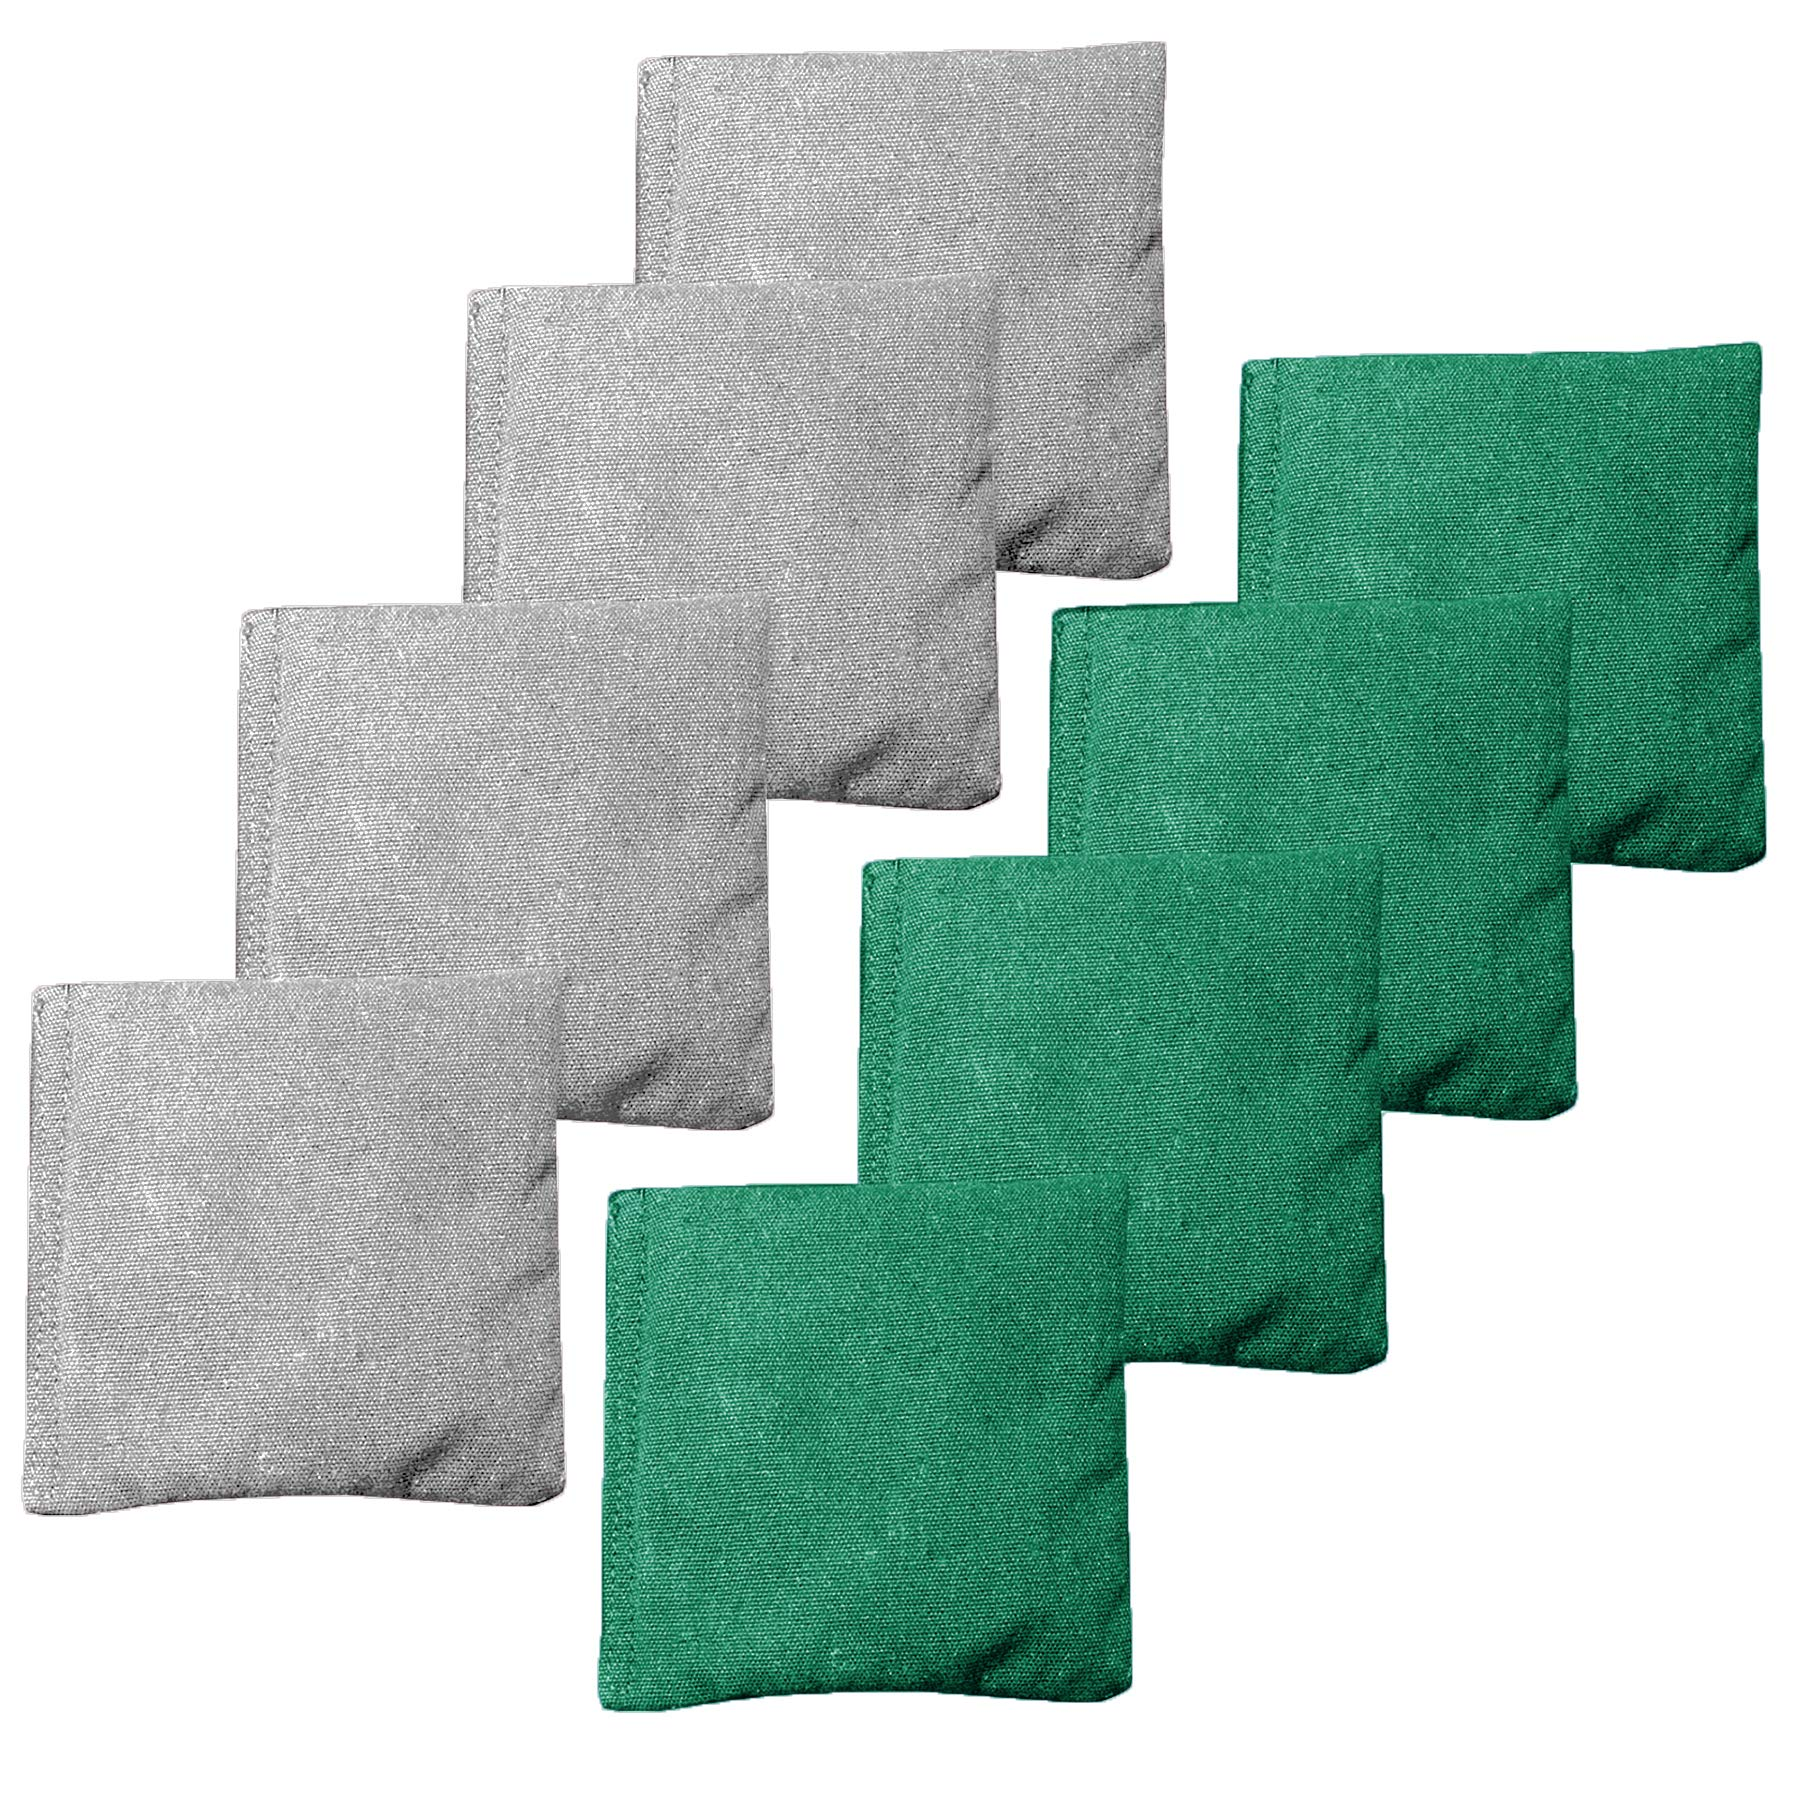 Weather Resistant Cornhole Bean Bags Set of 8 - Regulation Size & Weight - Green & Gray by Play Platoon